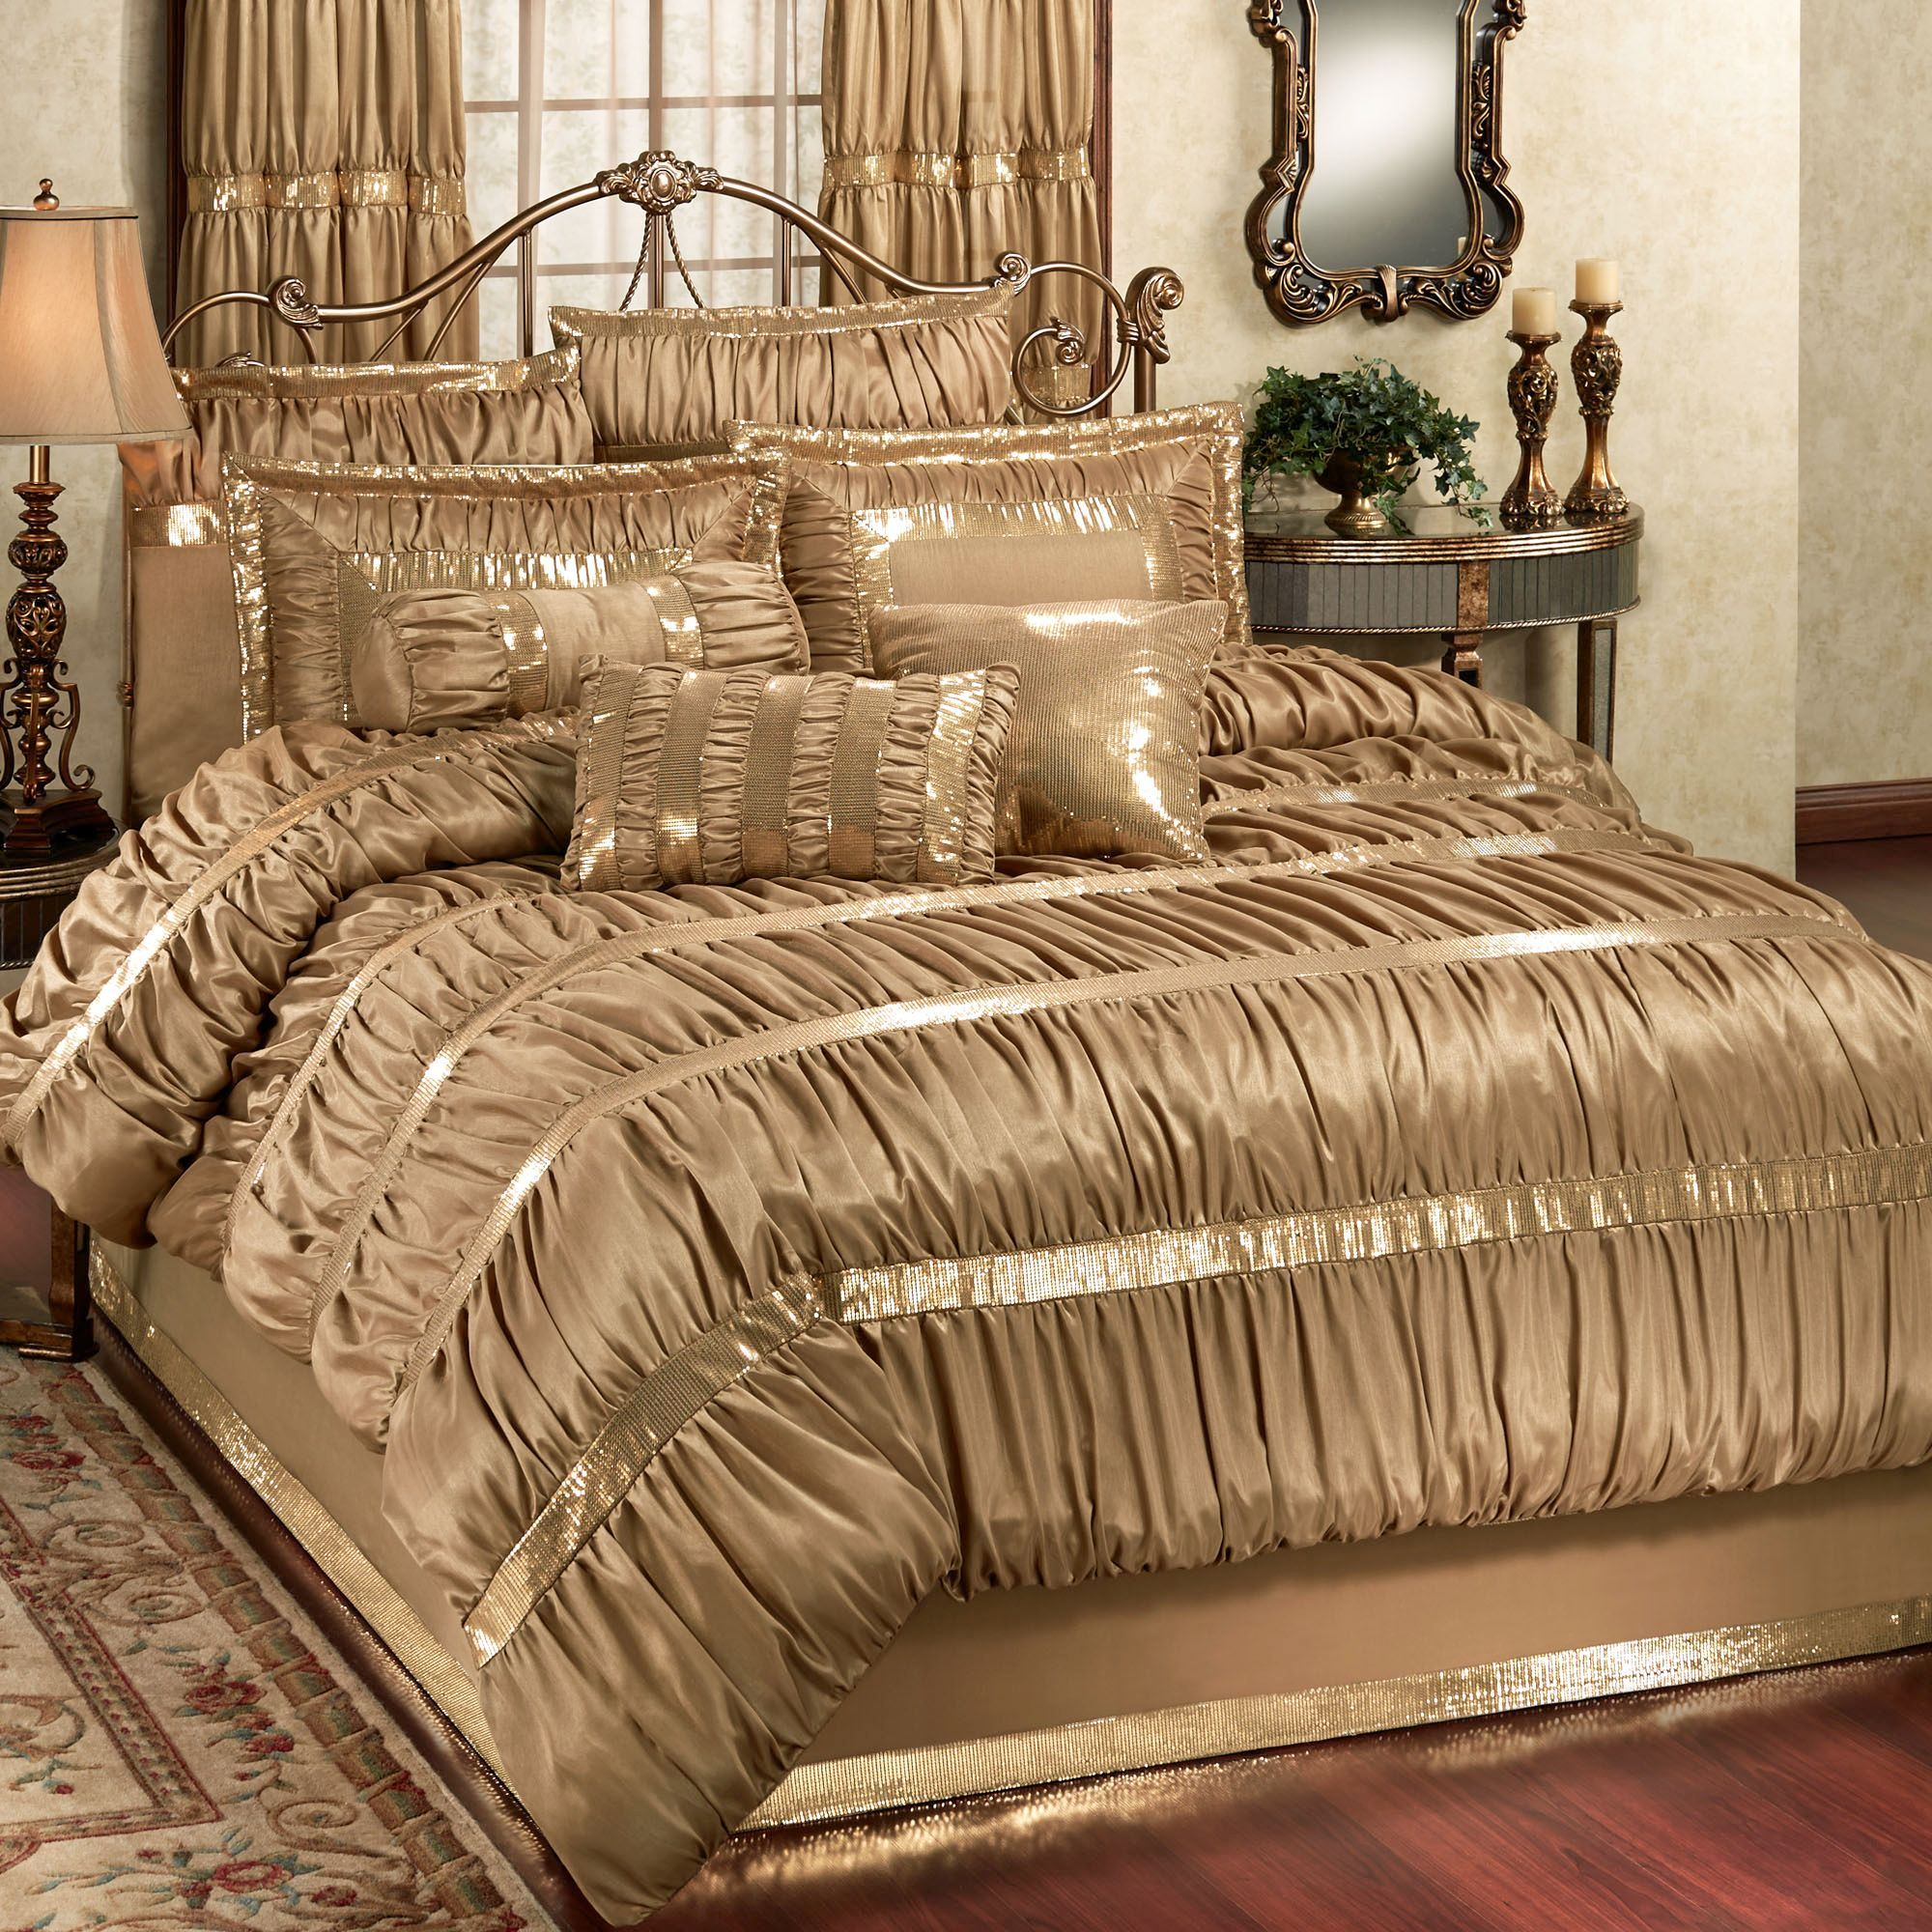 sets hotel today product comforter karma overstock bath home free shipping piece vcny bedding set